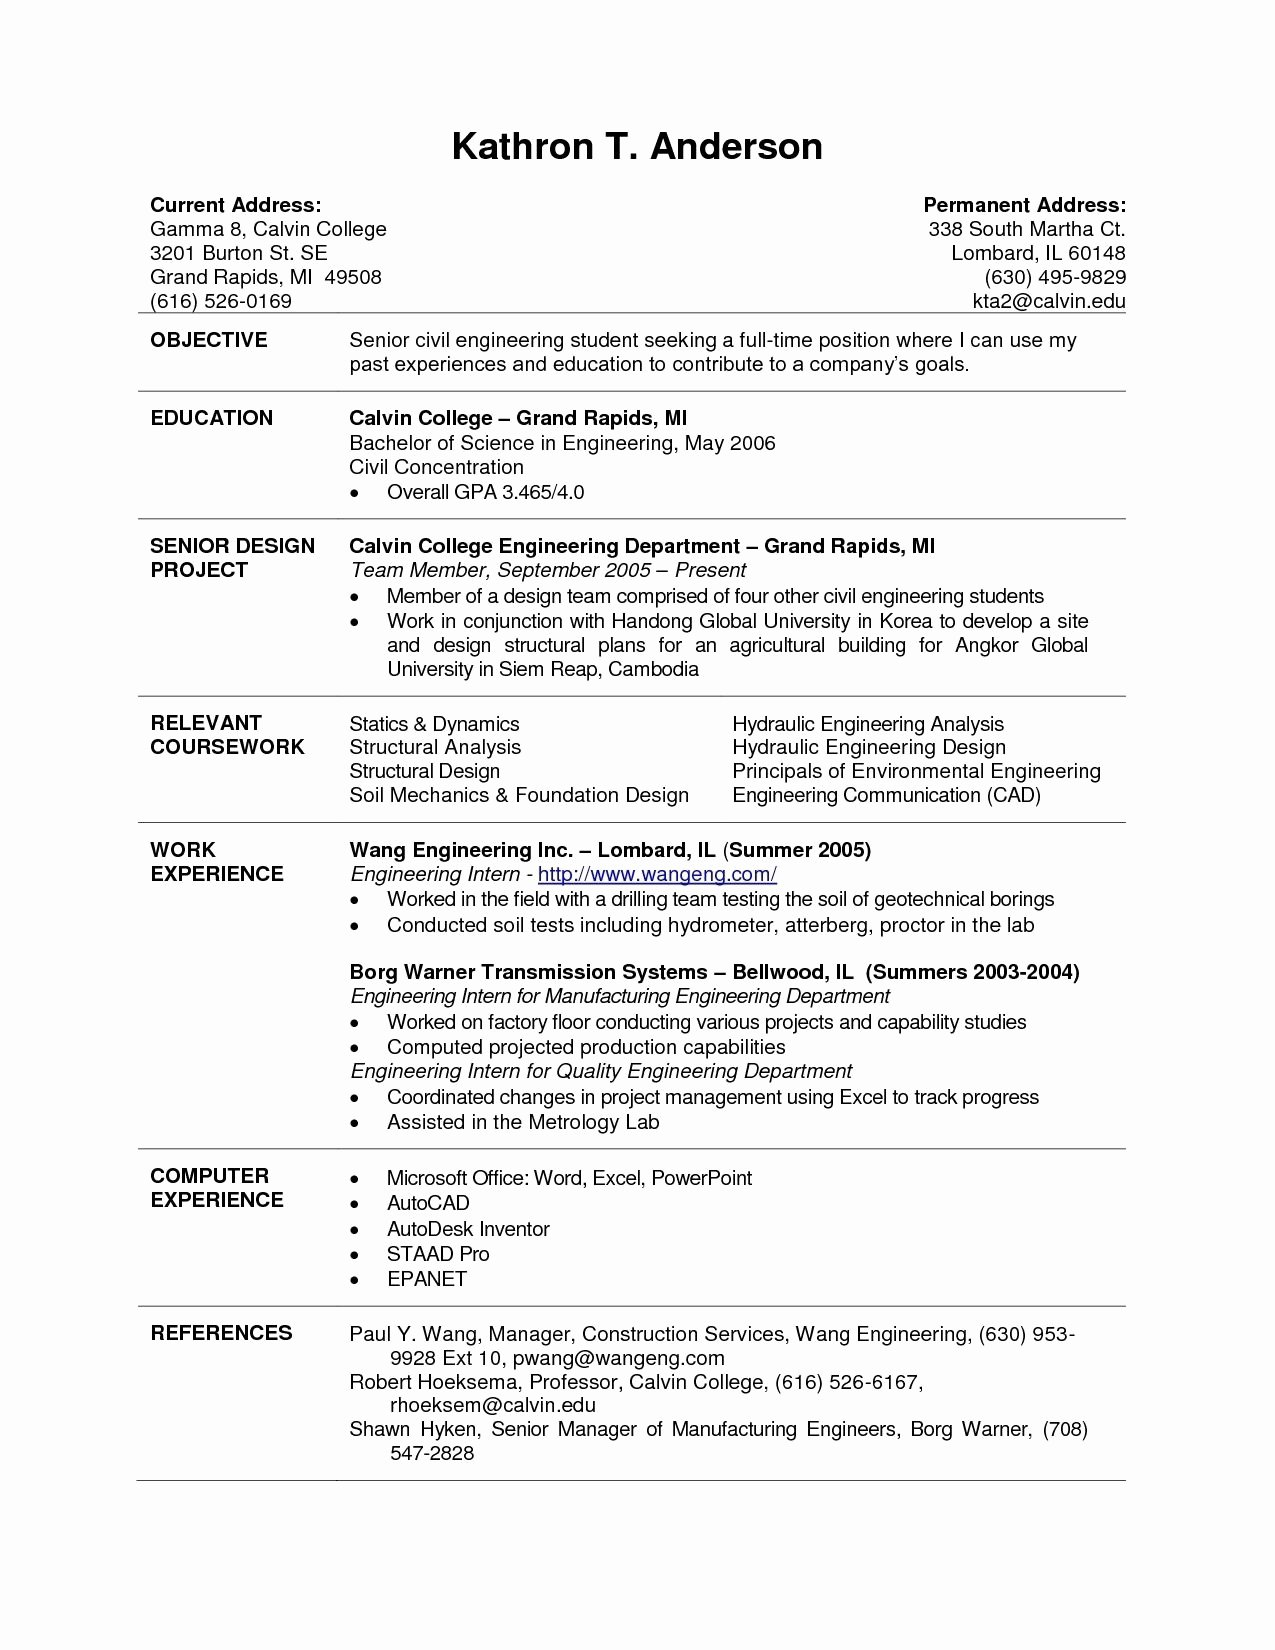 Academic Resume Template Word Lovely College Student Resume Template Word